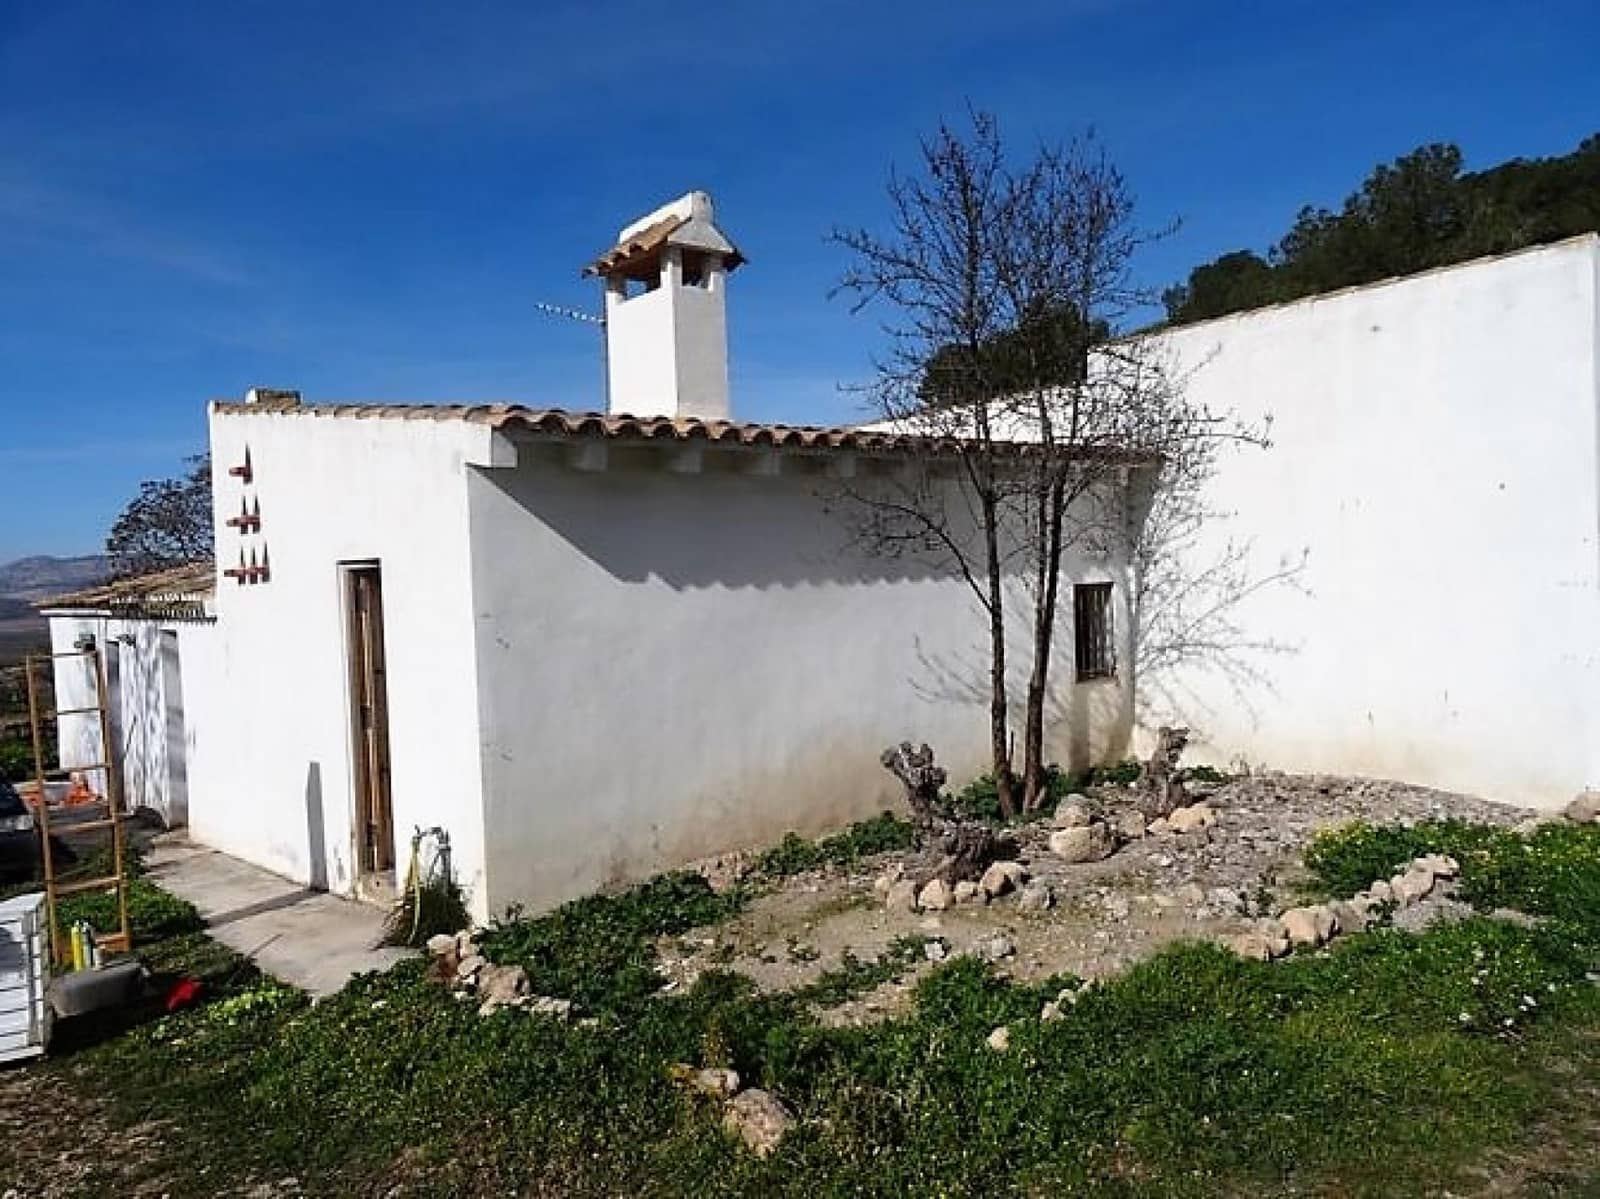 3 bedroom Finca/Country House for sale in Yecla - € 90,000 (Ref: 4457116)